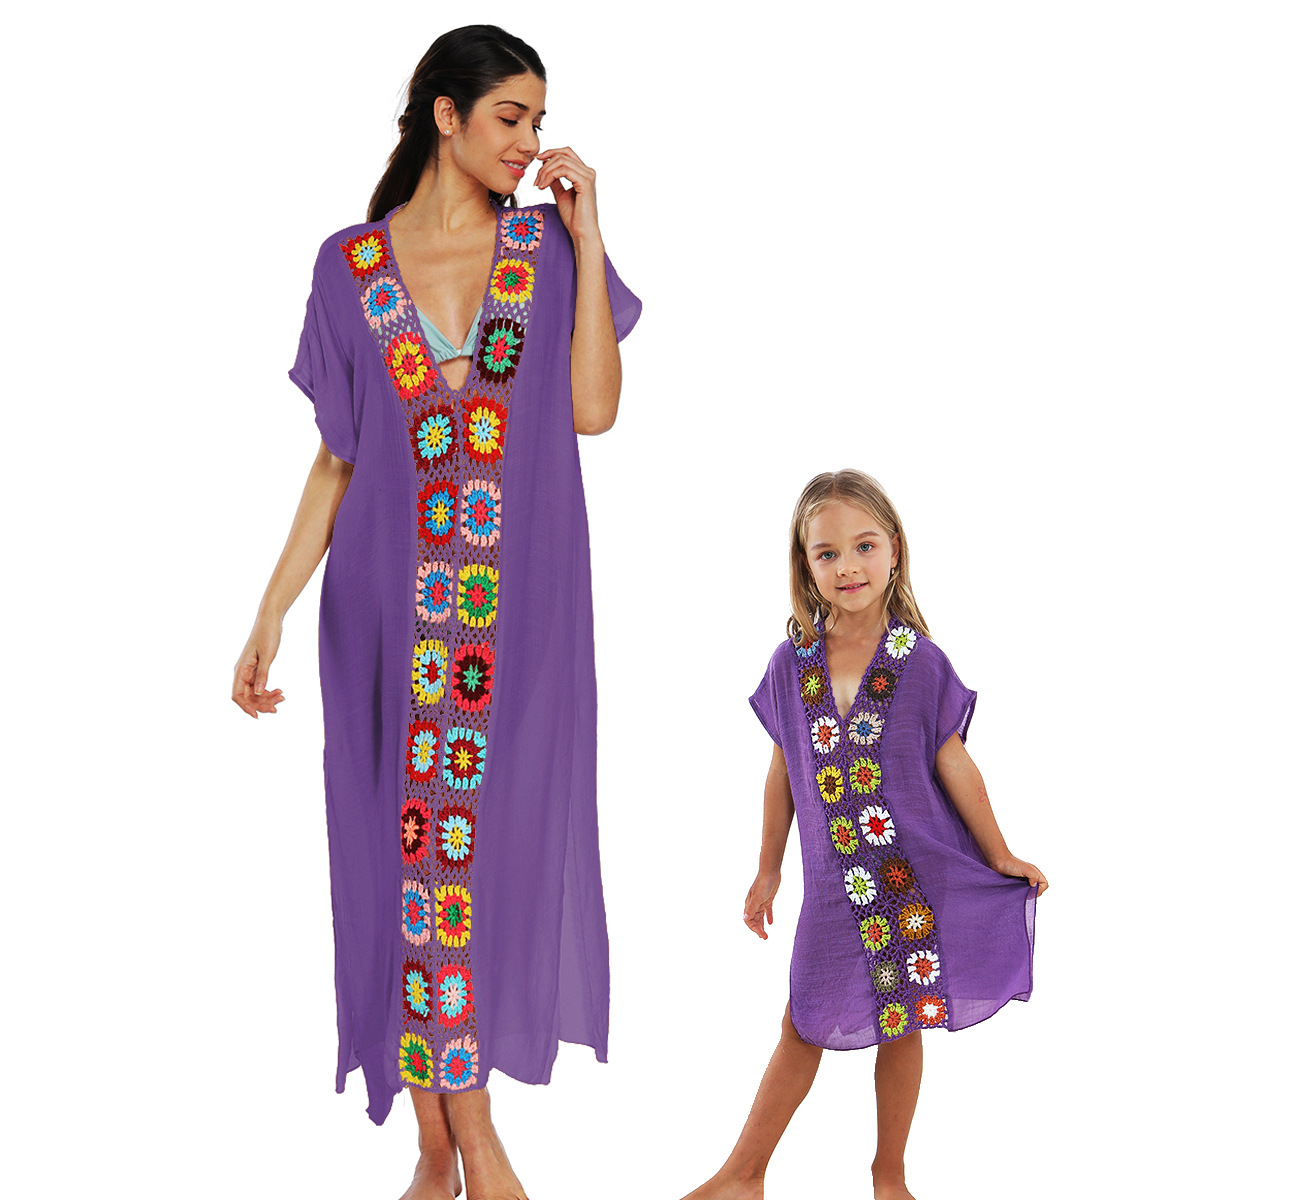 <font><b>AliExpress</b></font> Parent-child Matching Outfit Crochet Flower Joint Long Loose-Fit Slit CHILDREN'S <font><b>Dress</b></font> A1900 image